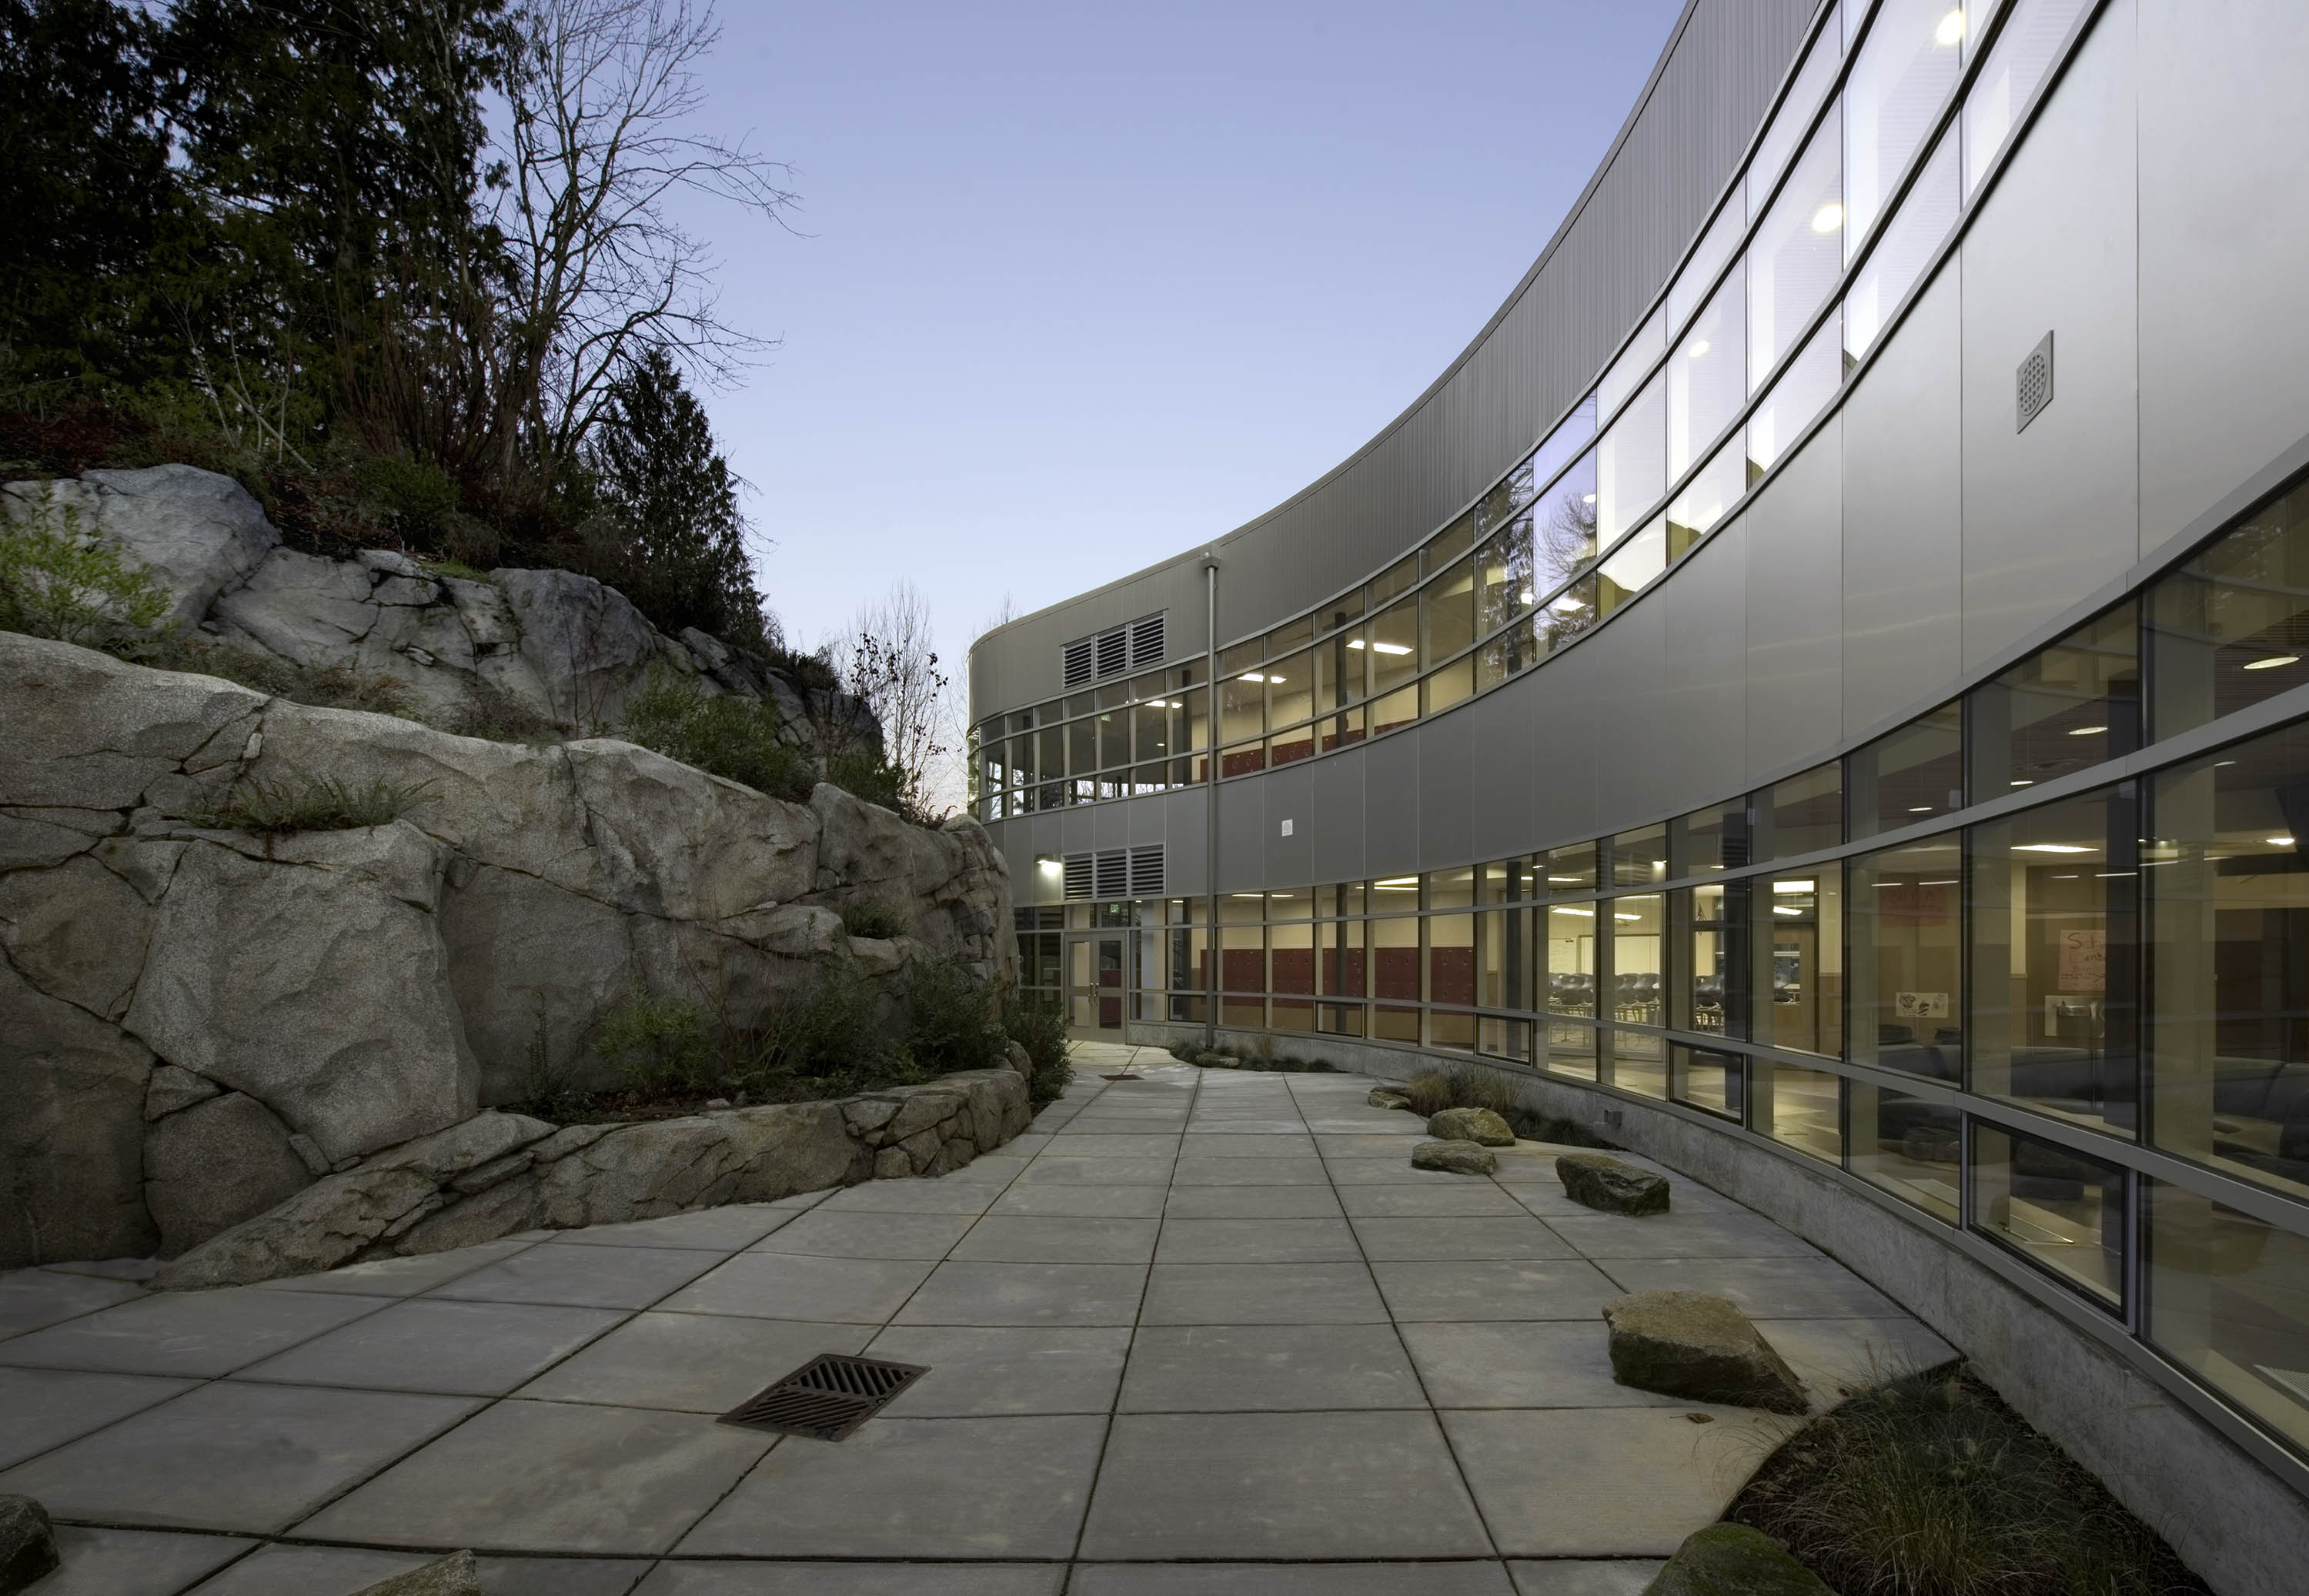 Exterior photo including the building and a rock feature.